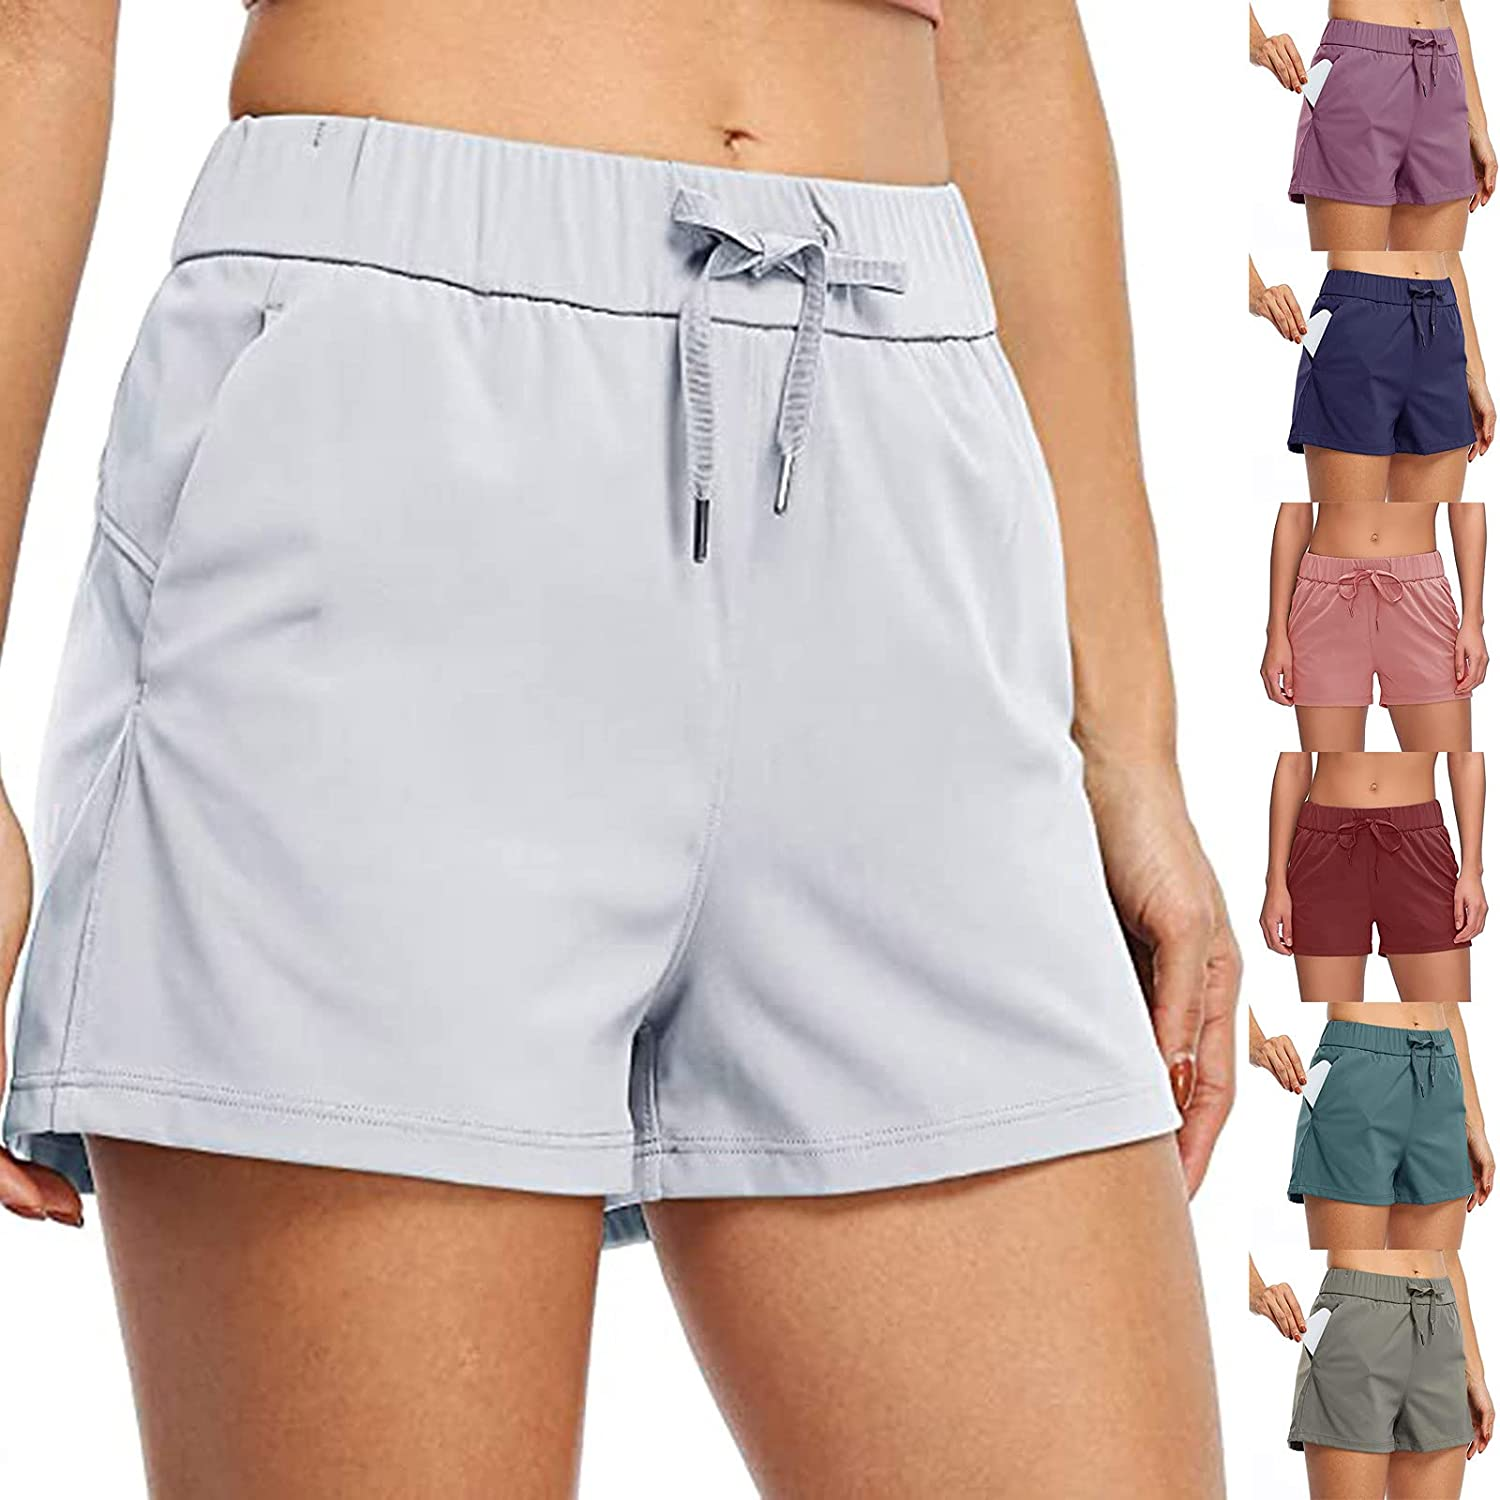 Women's Yoga Lounge Shorts Hiking Active Running Workout Shorts Comfy Travel Casual Shorts with Pockets